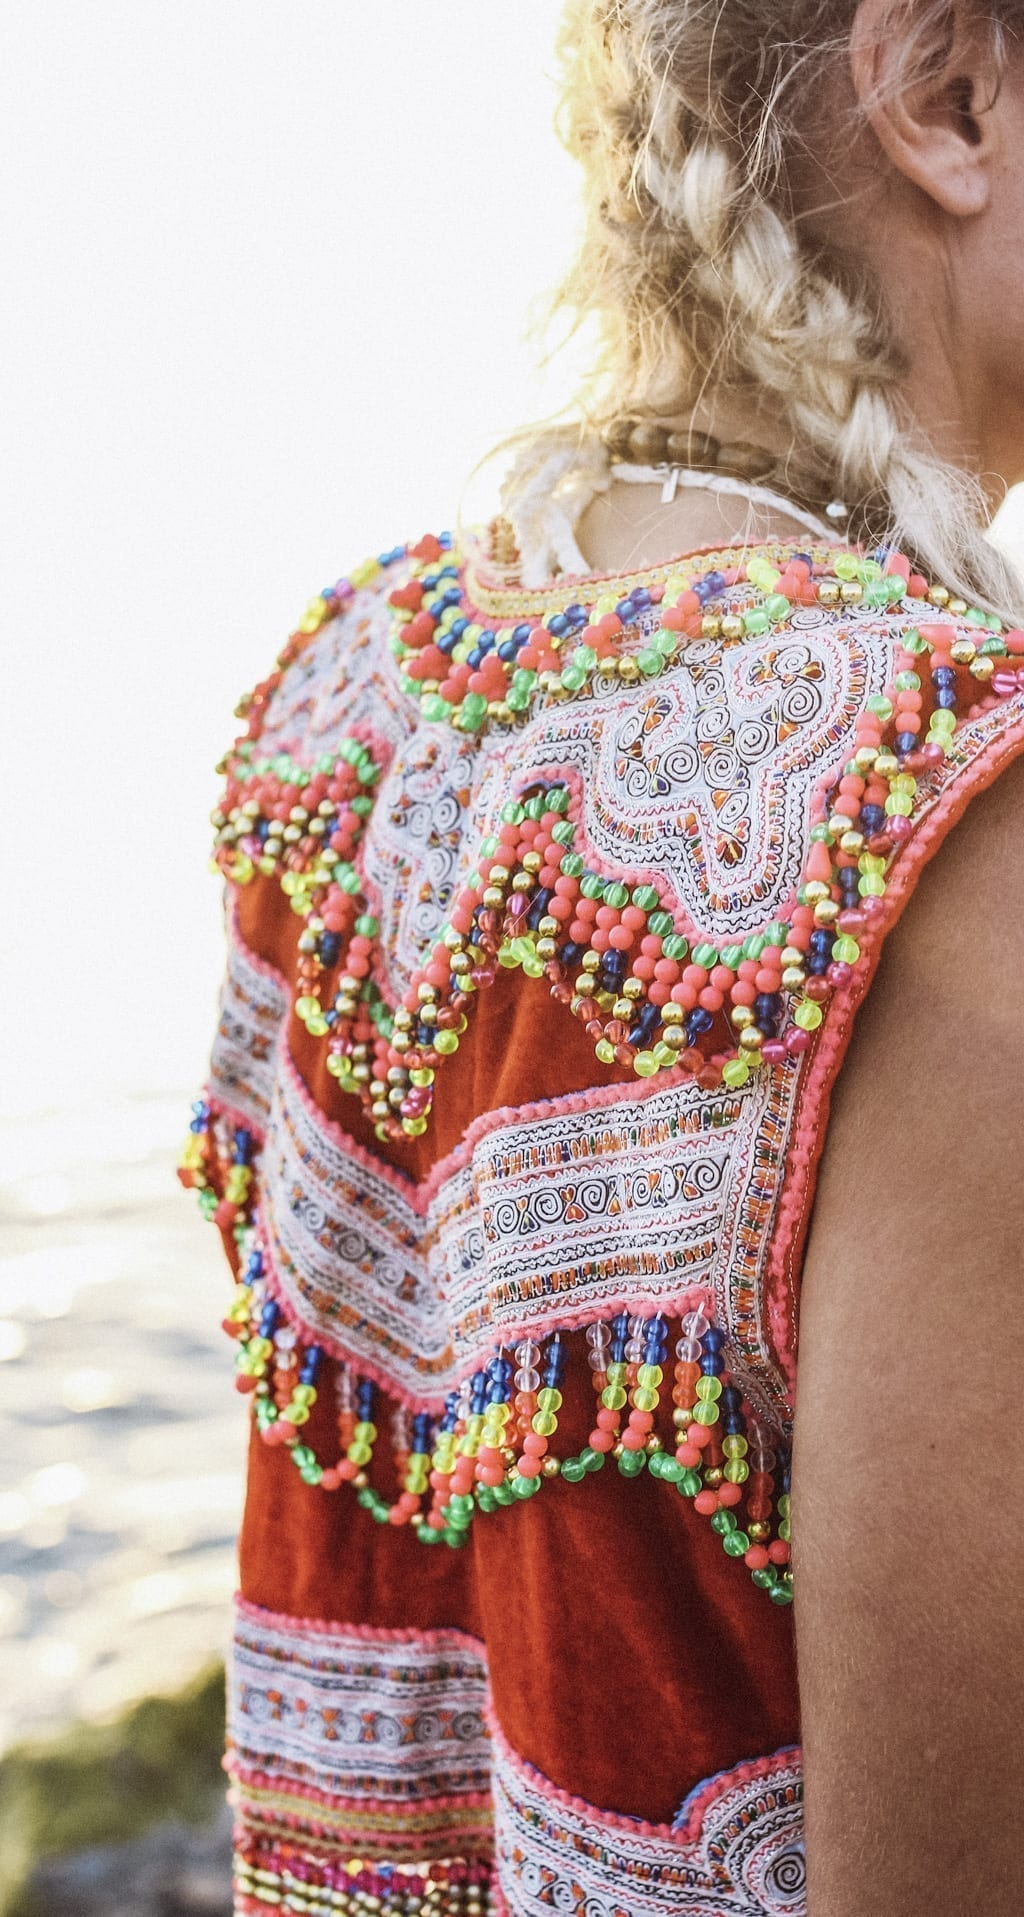 CK1605_Constantly-K-Karin-Kaswurm-Ibiza-Fashion-Beach-Style-At-The-Sea-Boho-Chic-Ethno-8625